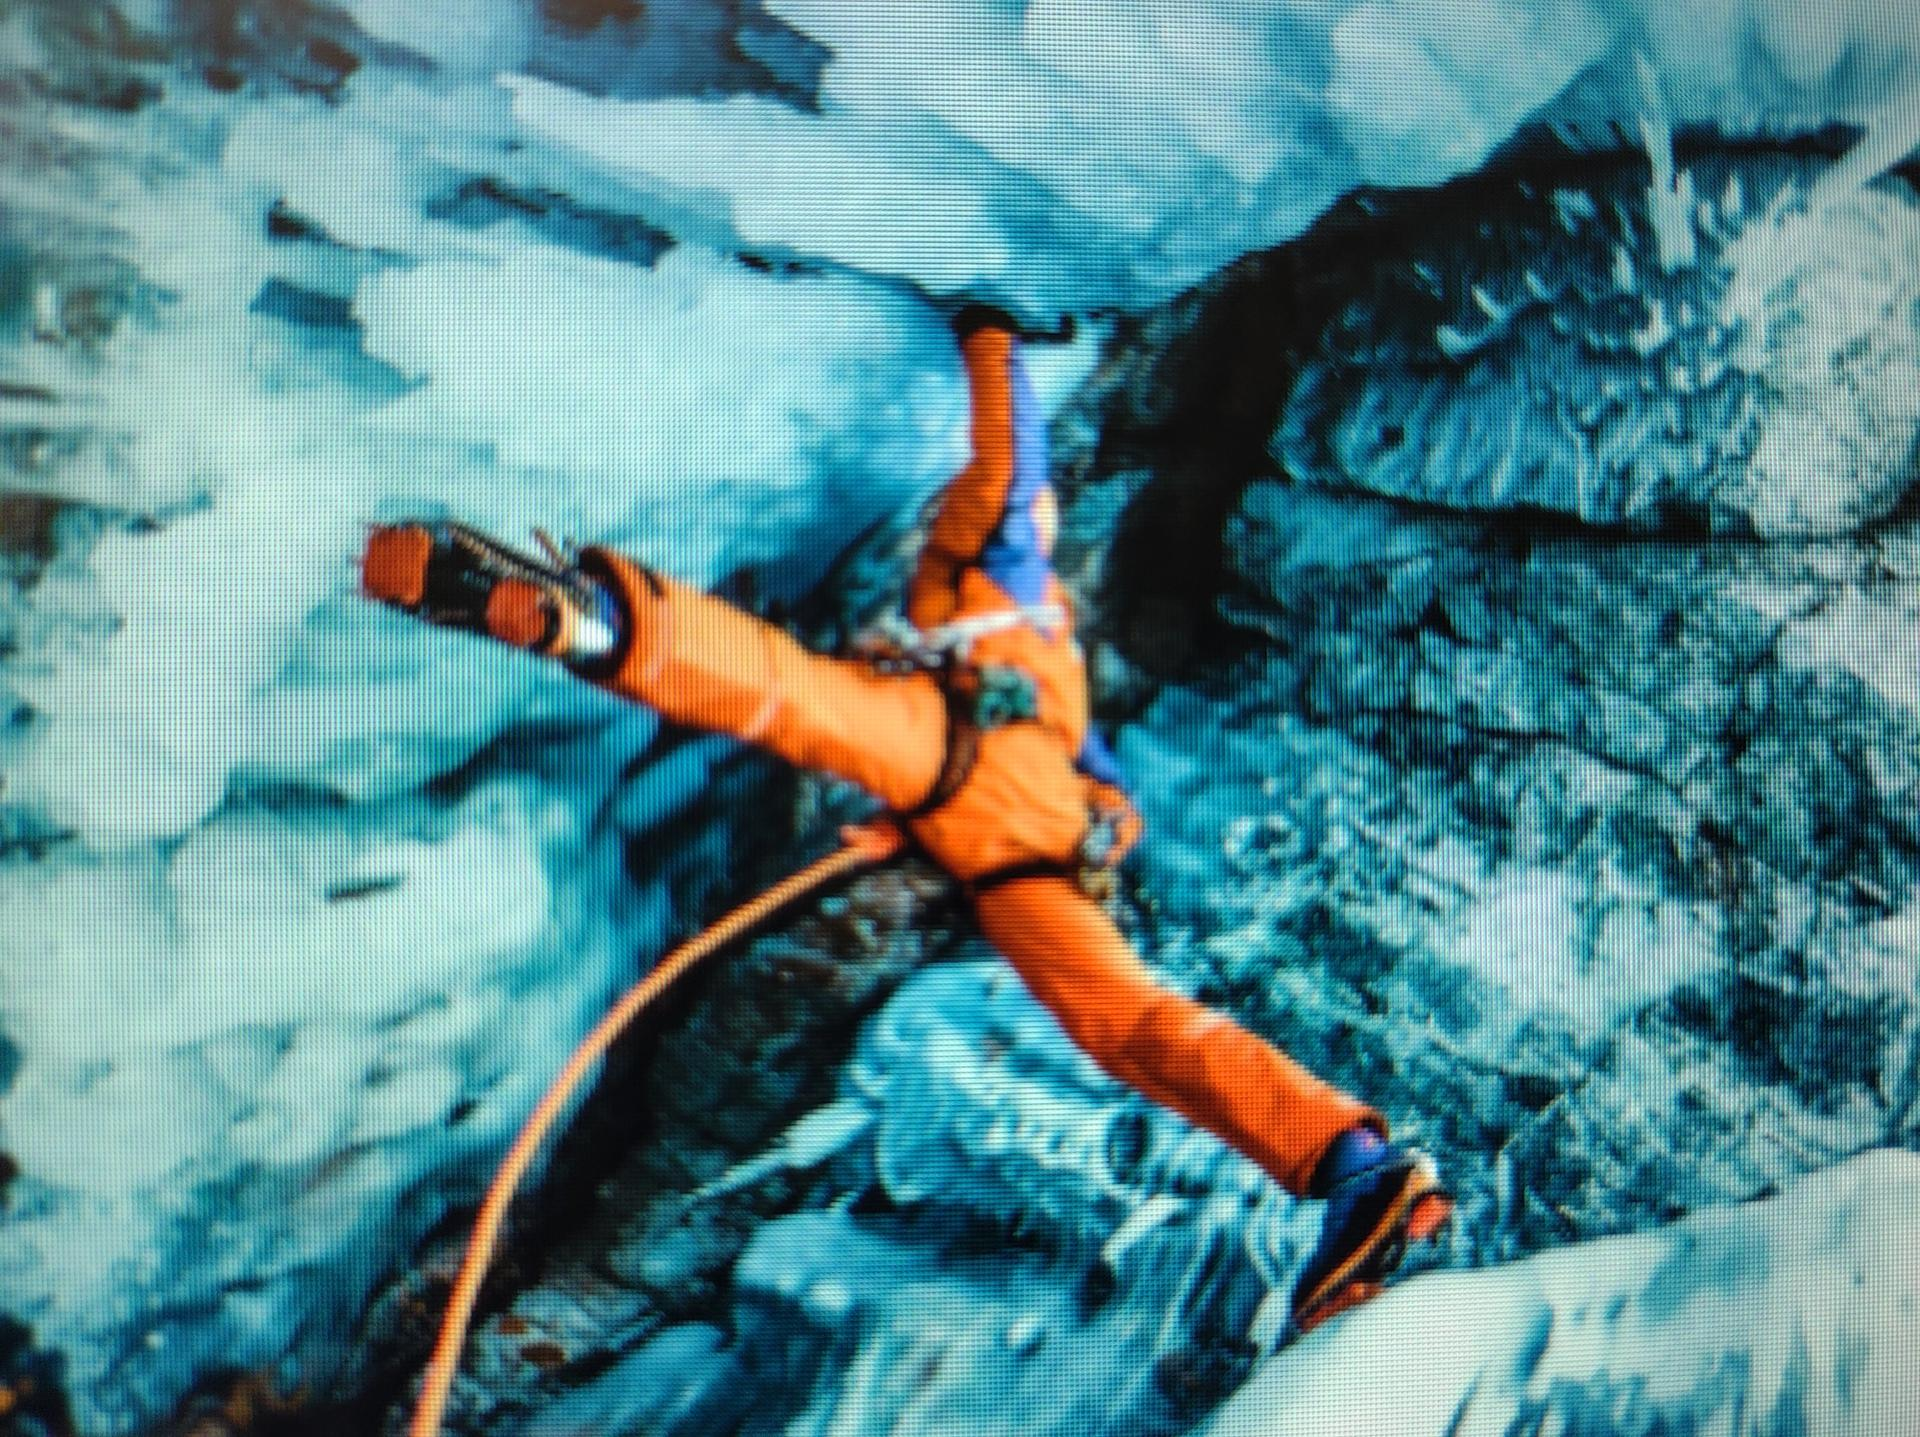 """Mountaineer athlete Dani Arnold explores the deepest lake on earth.  His legs are fully extended in a """"spread eagle"""" position as he makes a perilous climb up a very steep and treacherous ice-covered mountain."""